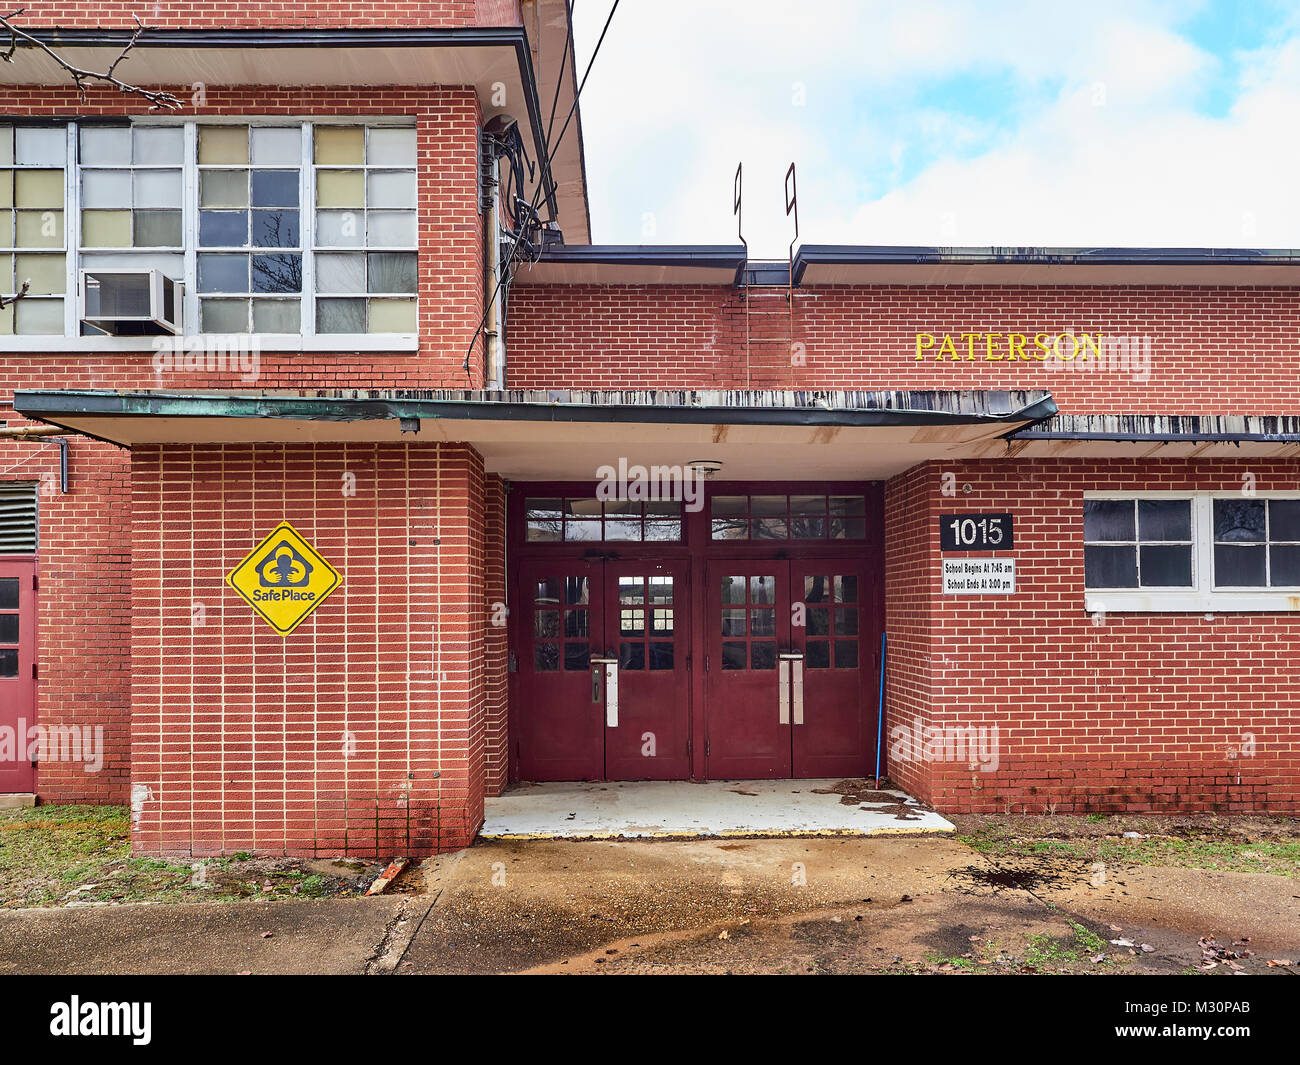 Closed and abandoned Paterson elementary school building that is dilapidated and rundown in Montgomery Alabama USA. - Stock Image